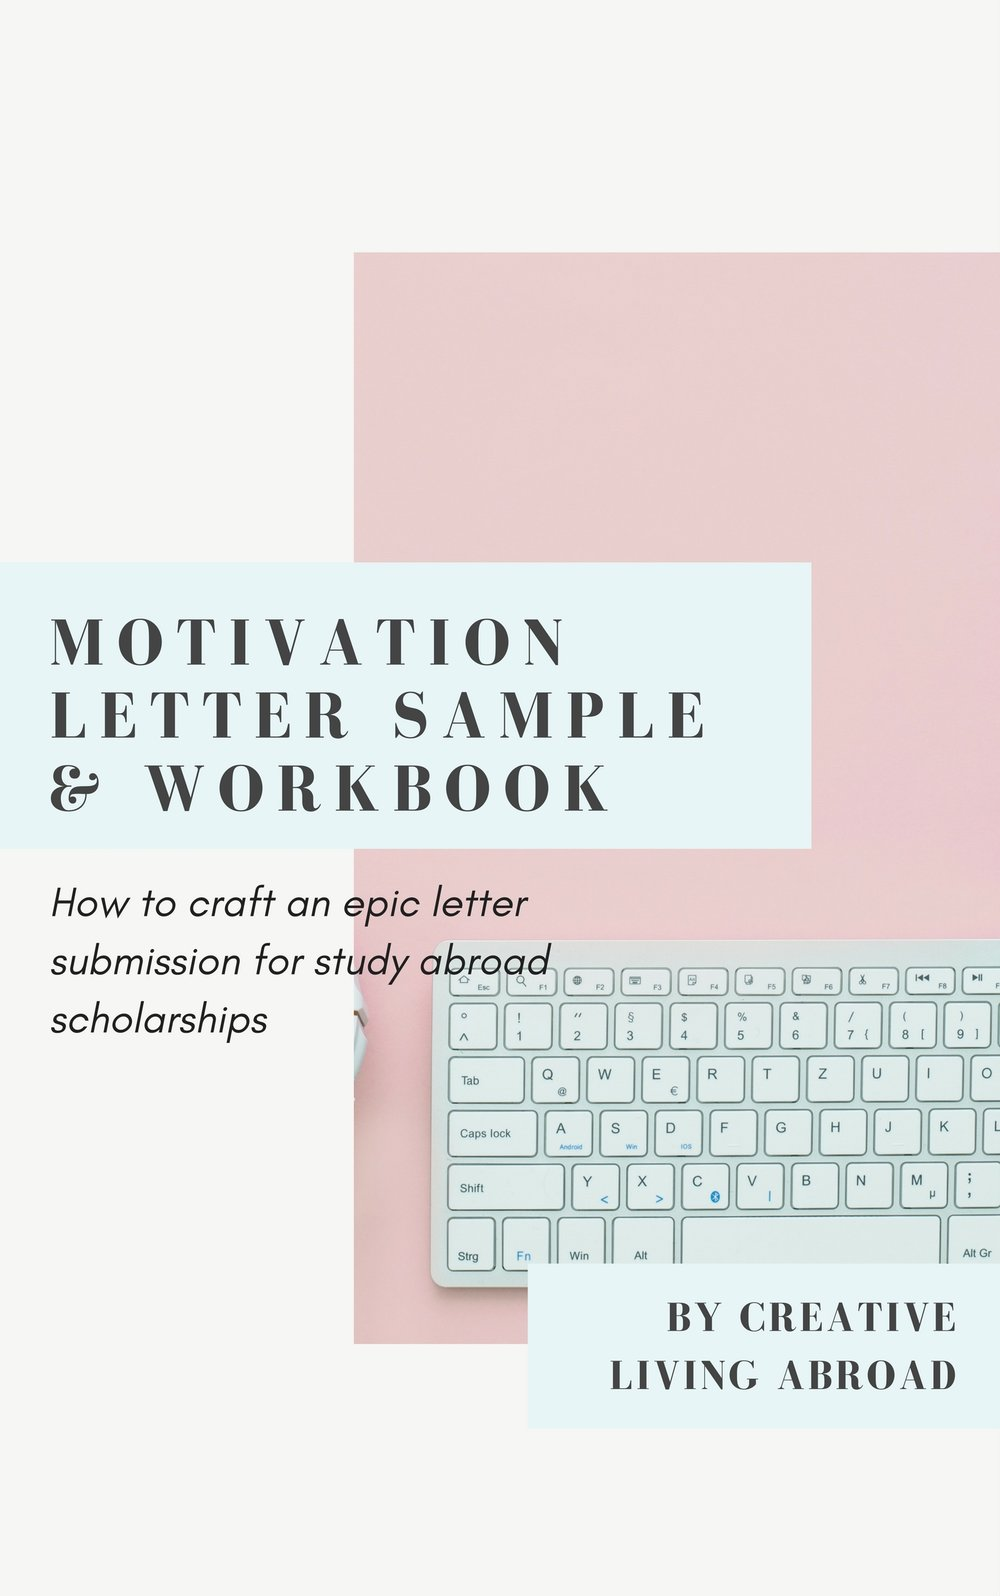 sample motivation letter and workbook